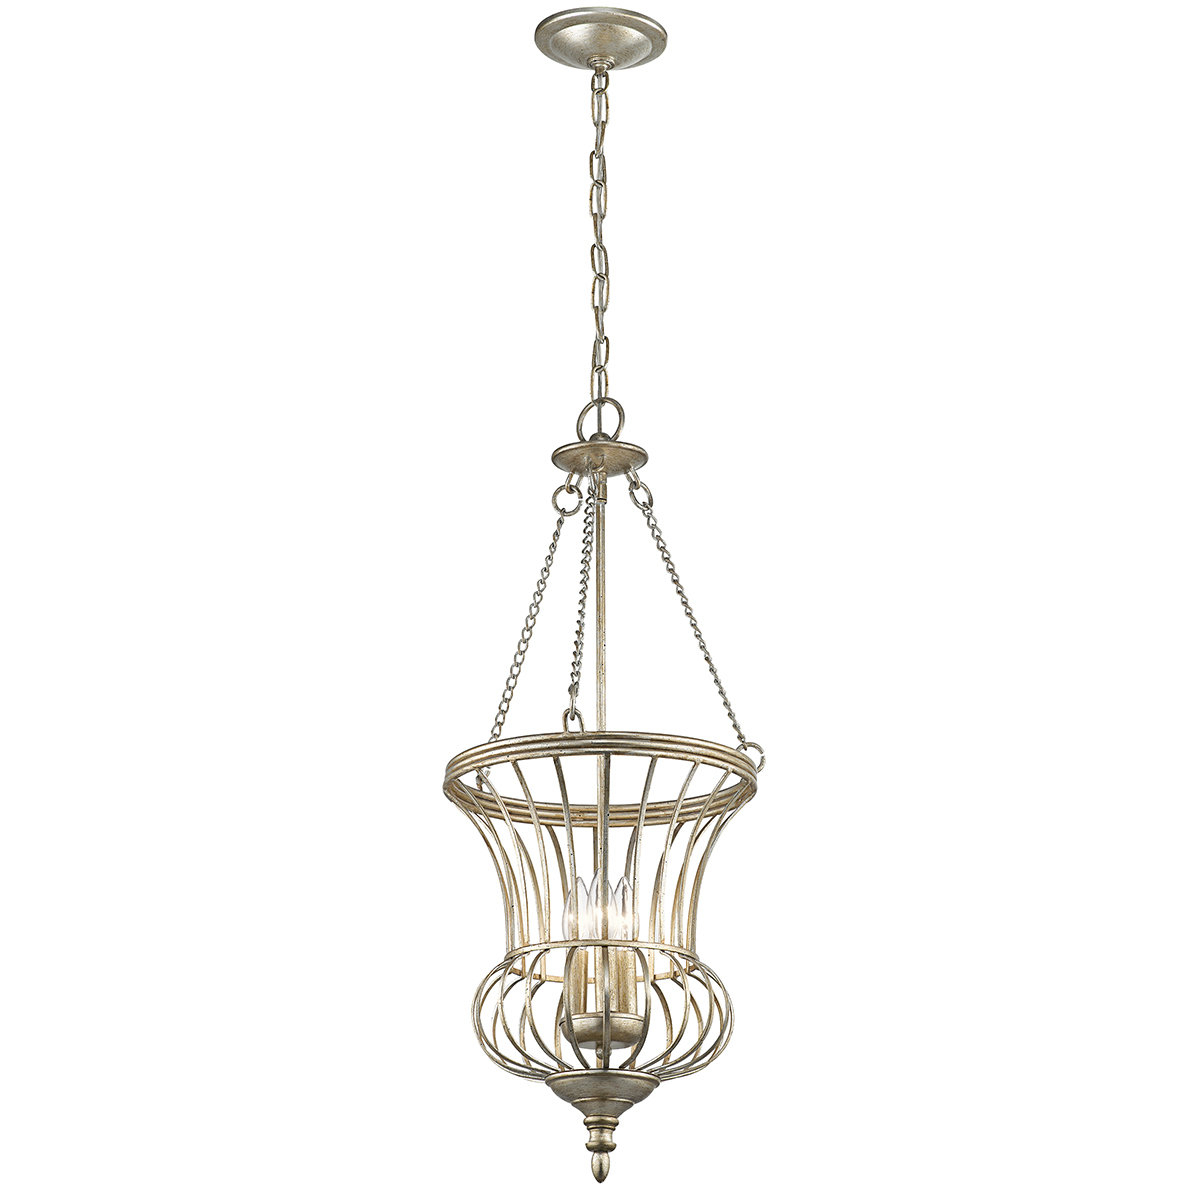 Badgley 3-Light Urn Pendant within Spokane 1-Light Single Urn Pendants (Image 4 of 30)